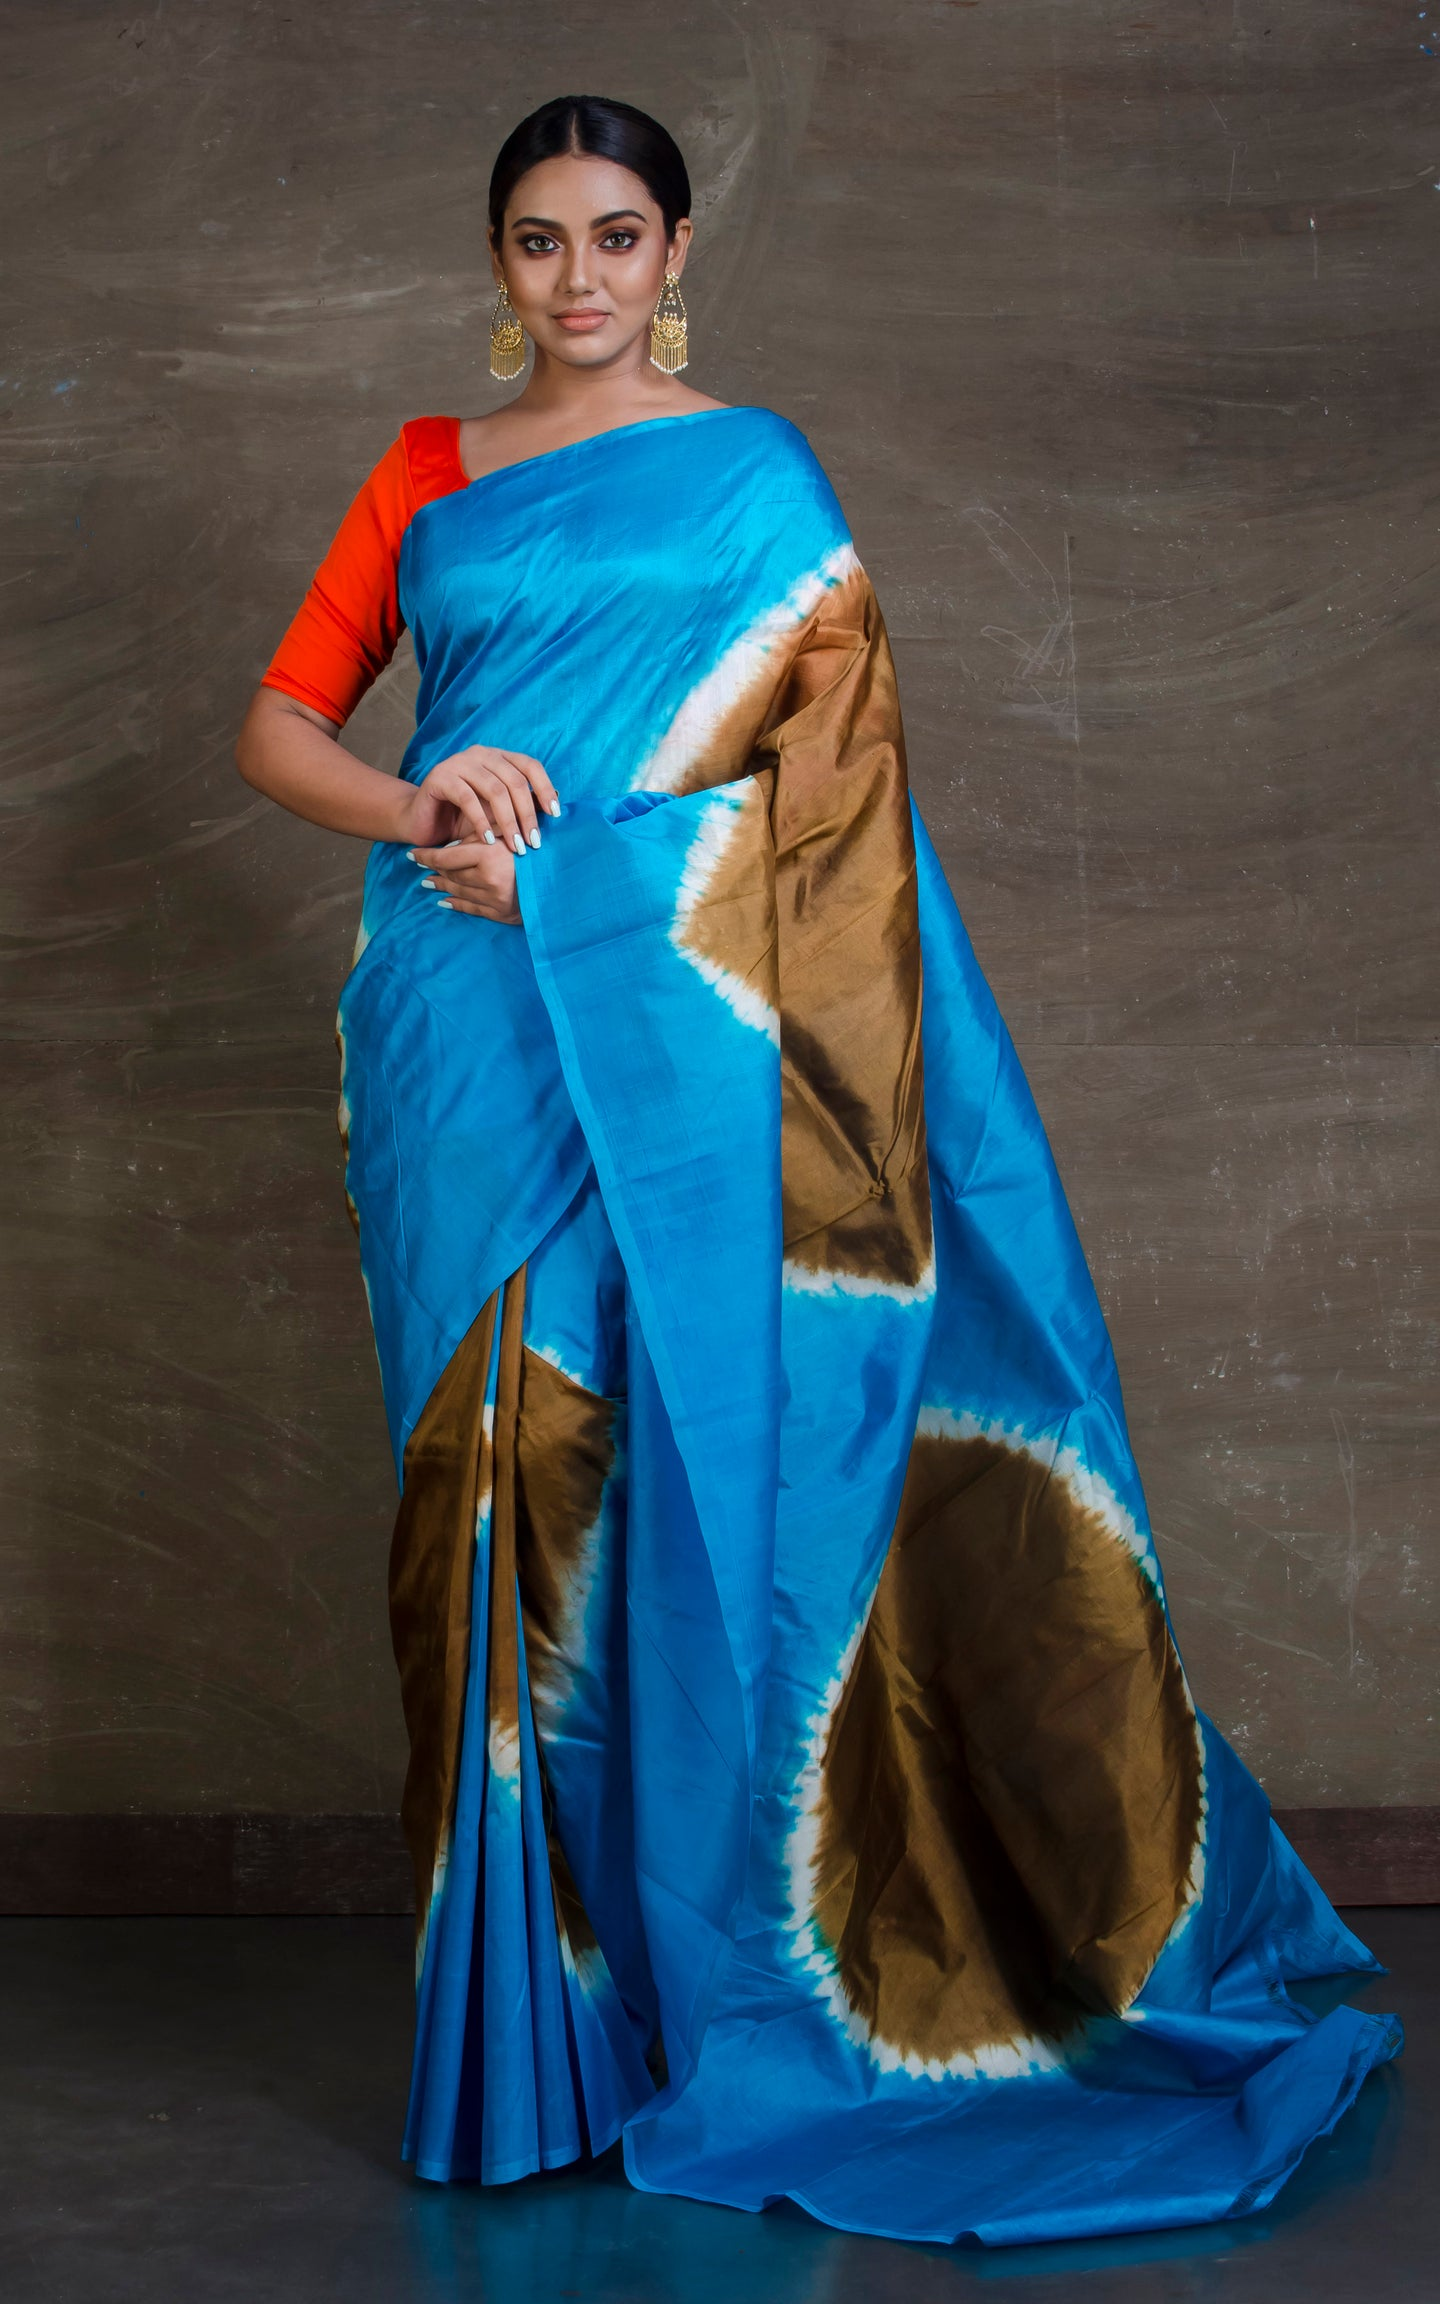 Printed Bishnupuri Pure Silk Saree in Blue, Off White and Snuff Brown